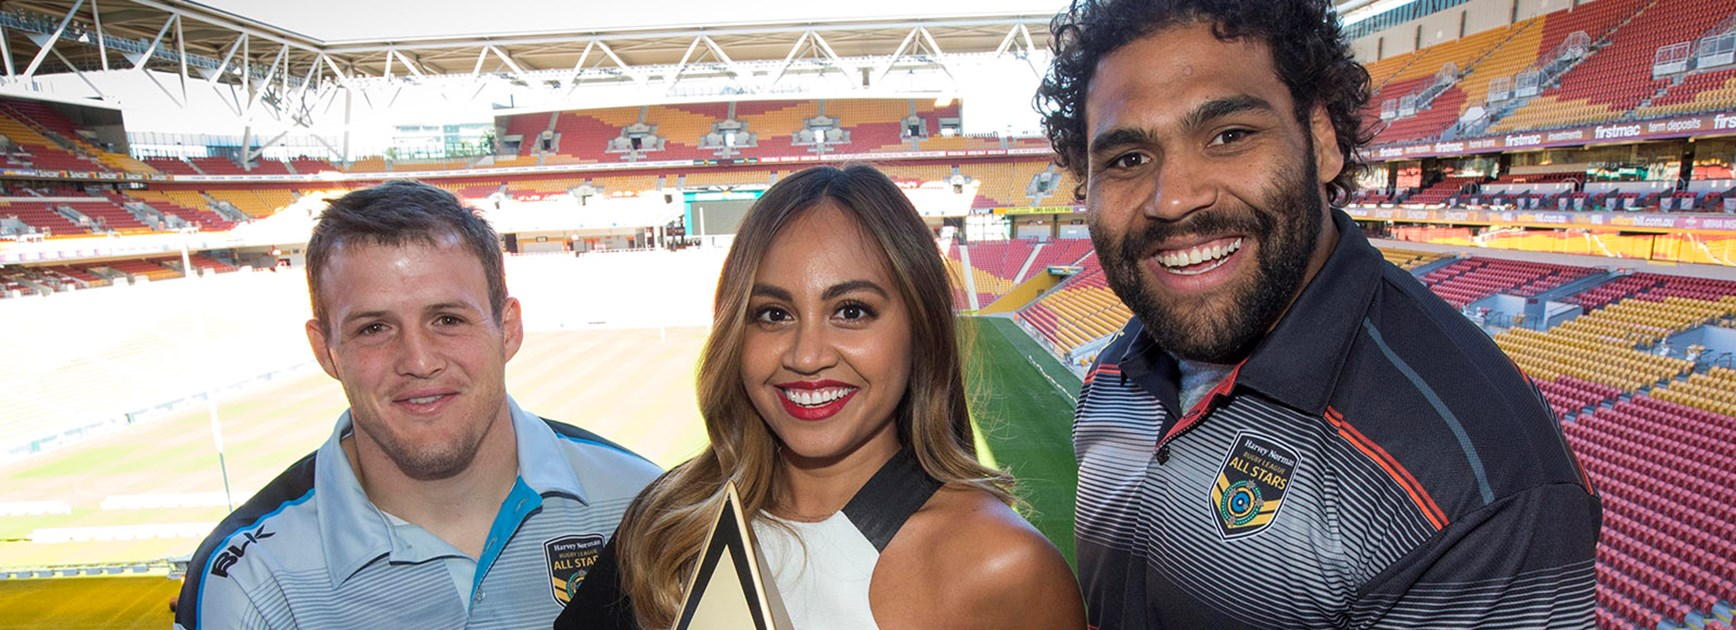 Josh Morris, Jessica Mauboy and Sam Thaiday at the launch of the 2016 All Stars Match.